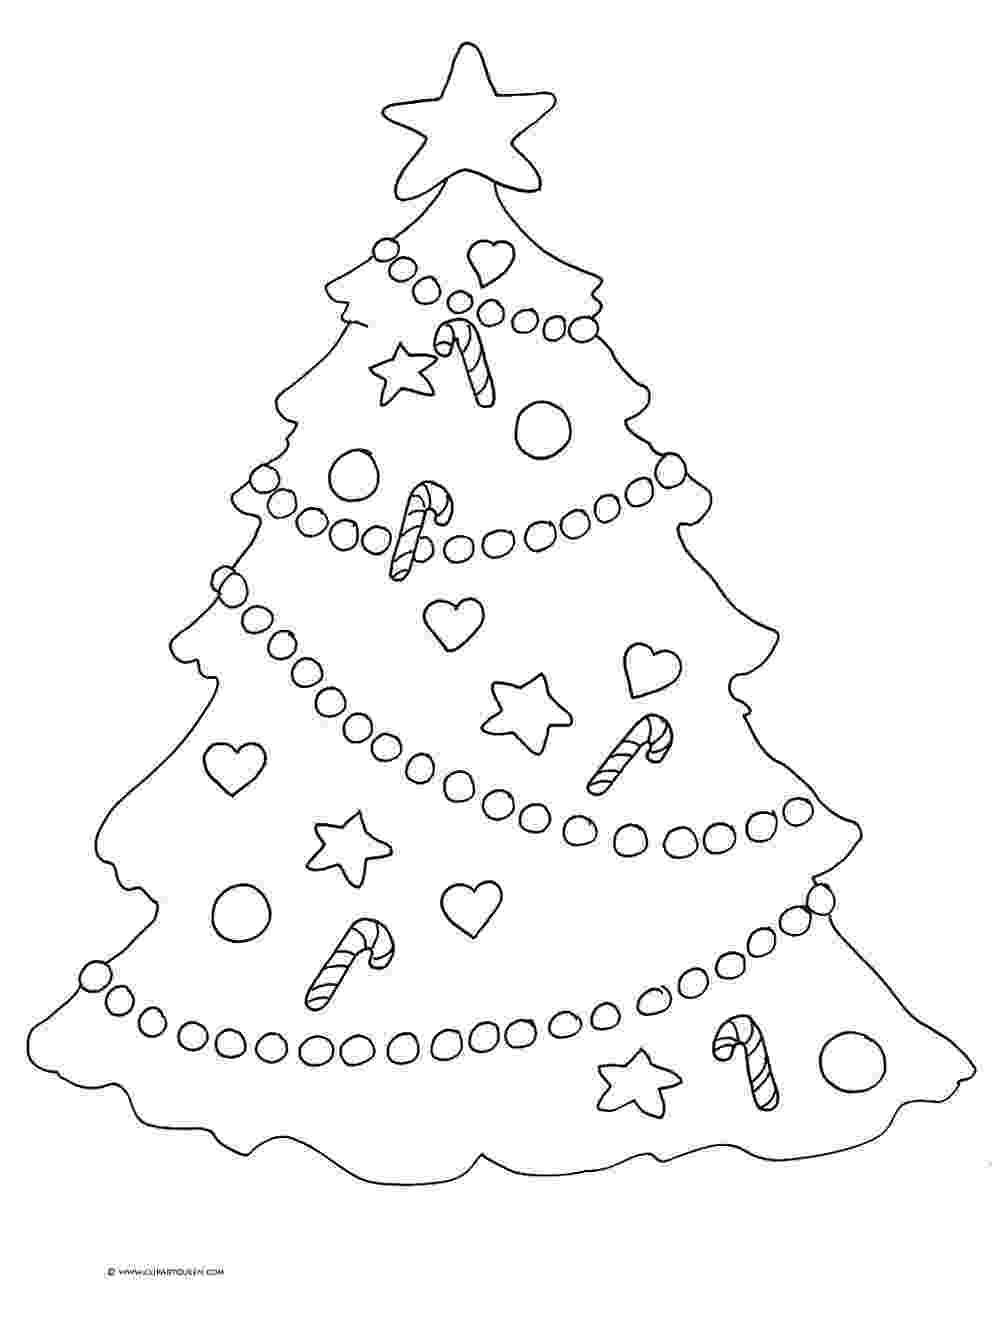 colouring pages christmas tree christmas tree coloring pages for childrens printable for free christmas tree pages colouring